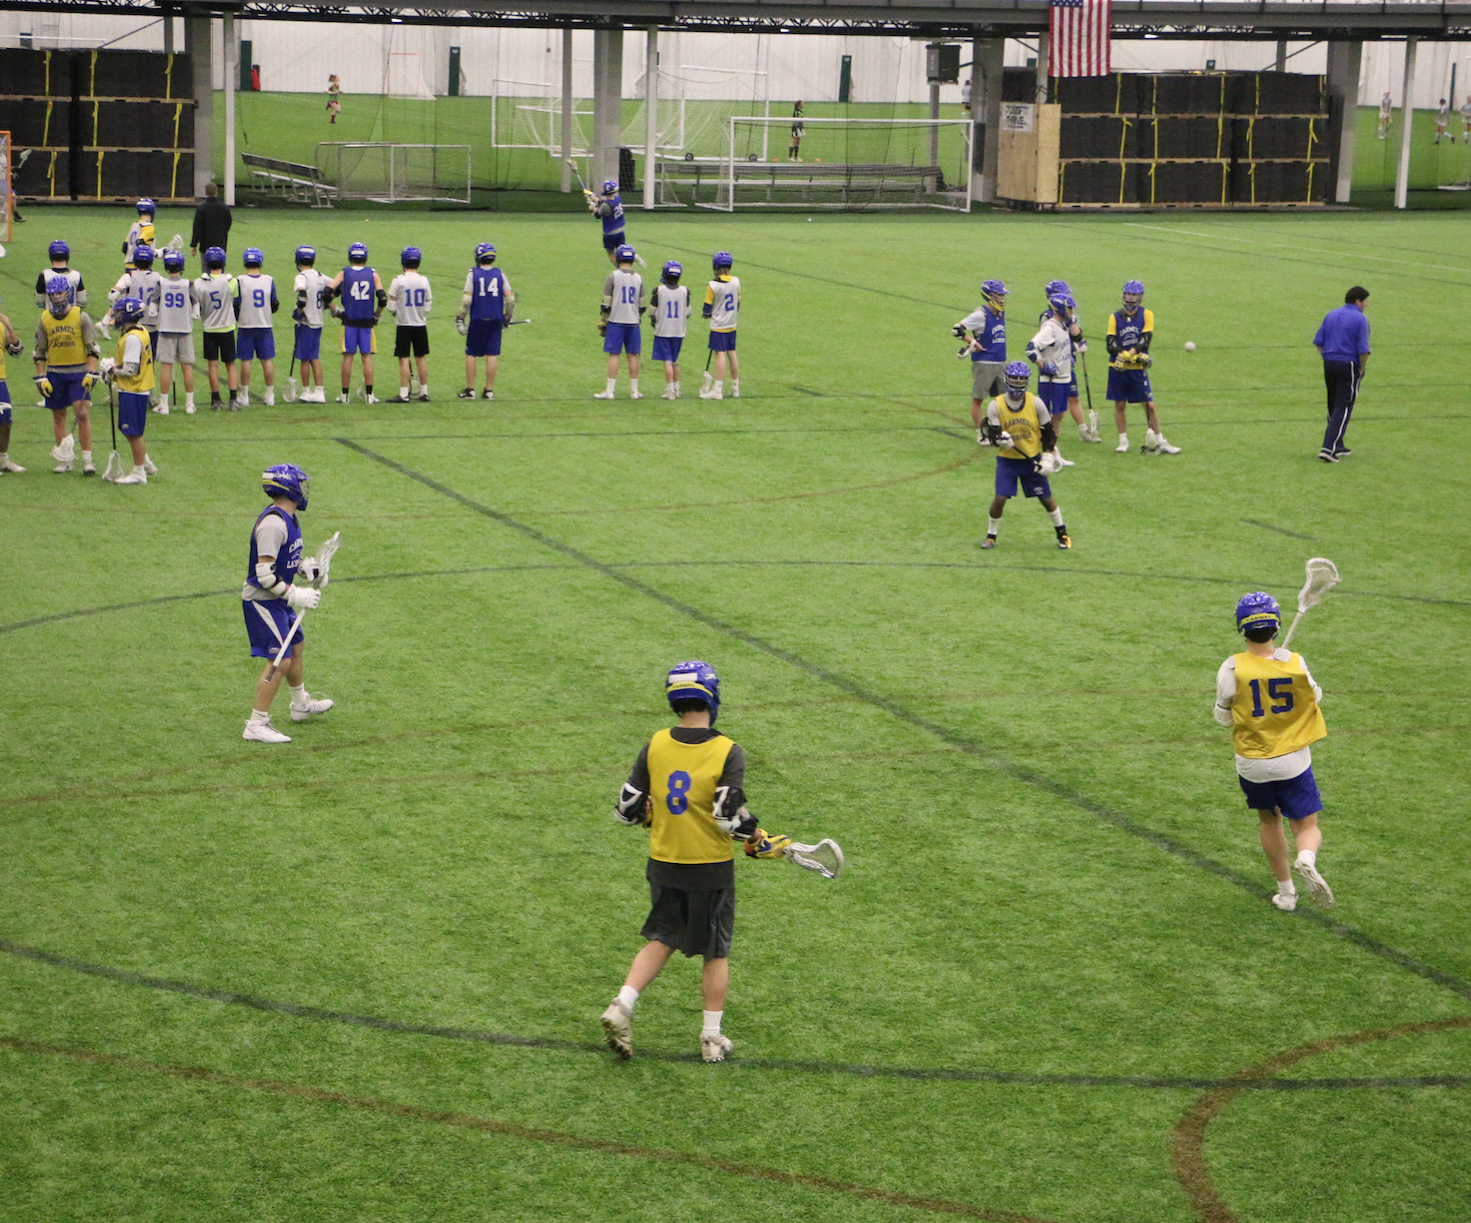 The men's Varsity lacrosse team practices during the preseason at Grand Park. The team will play its first official season game on Fri. March 16.